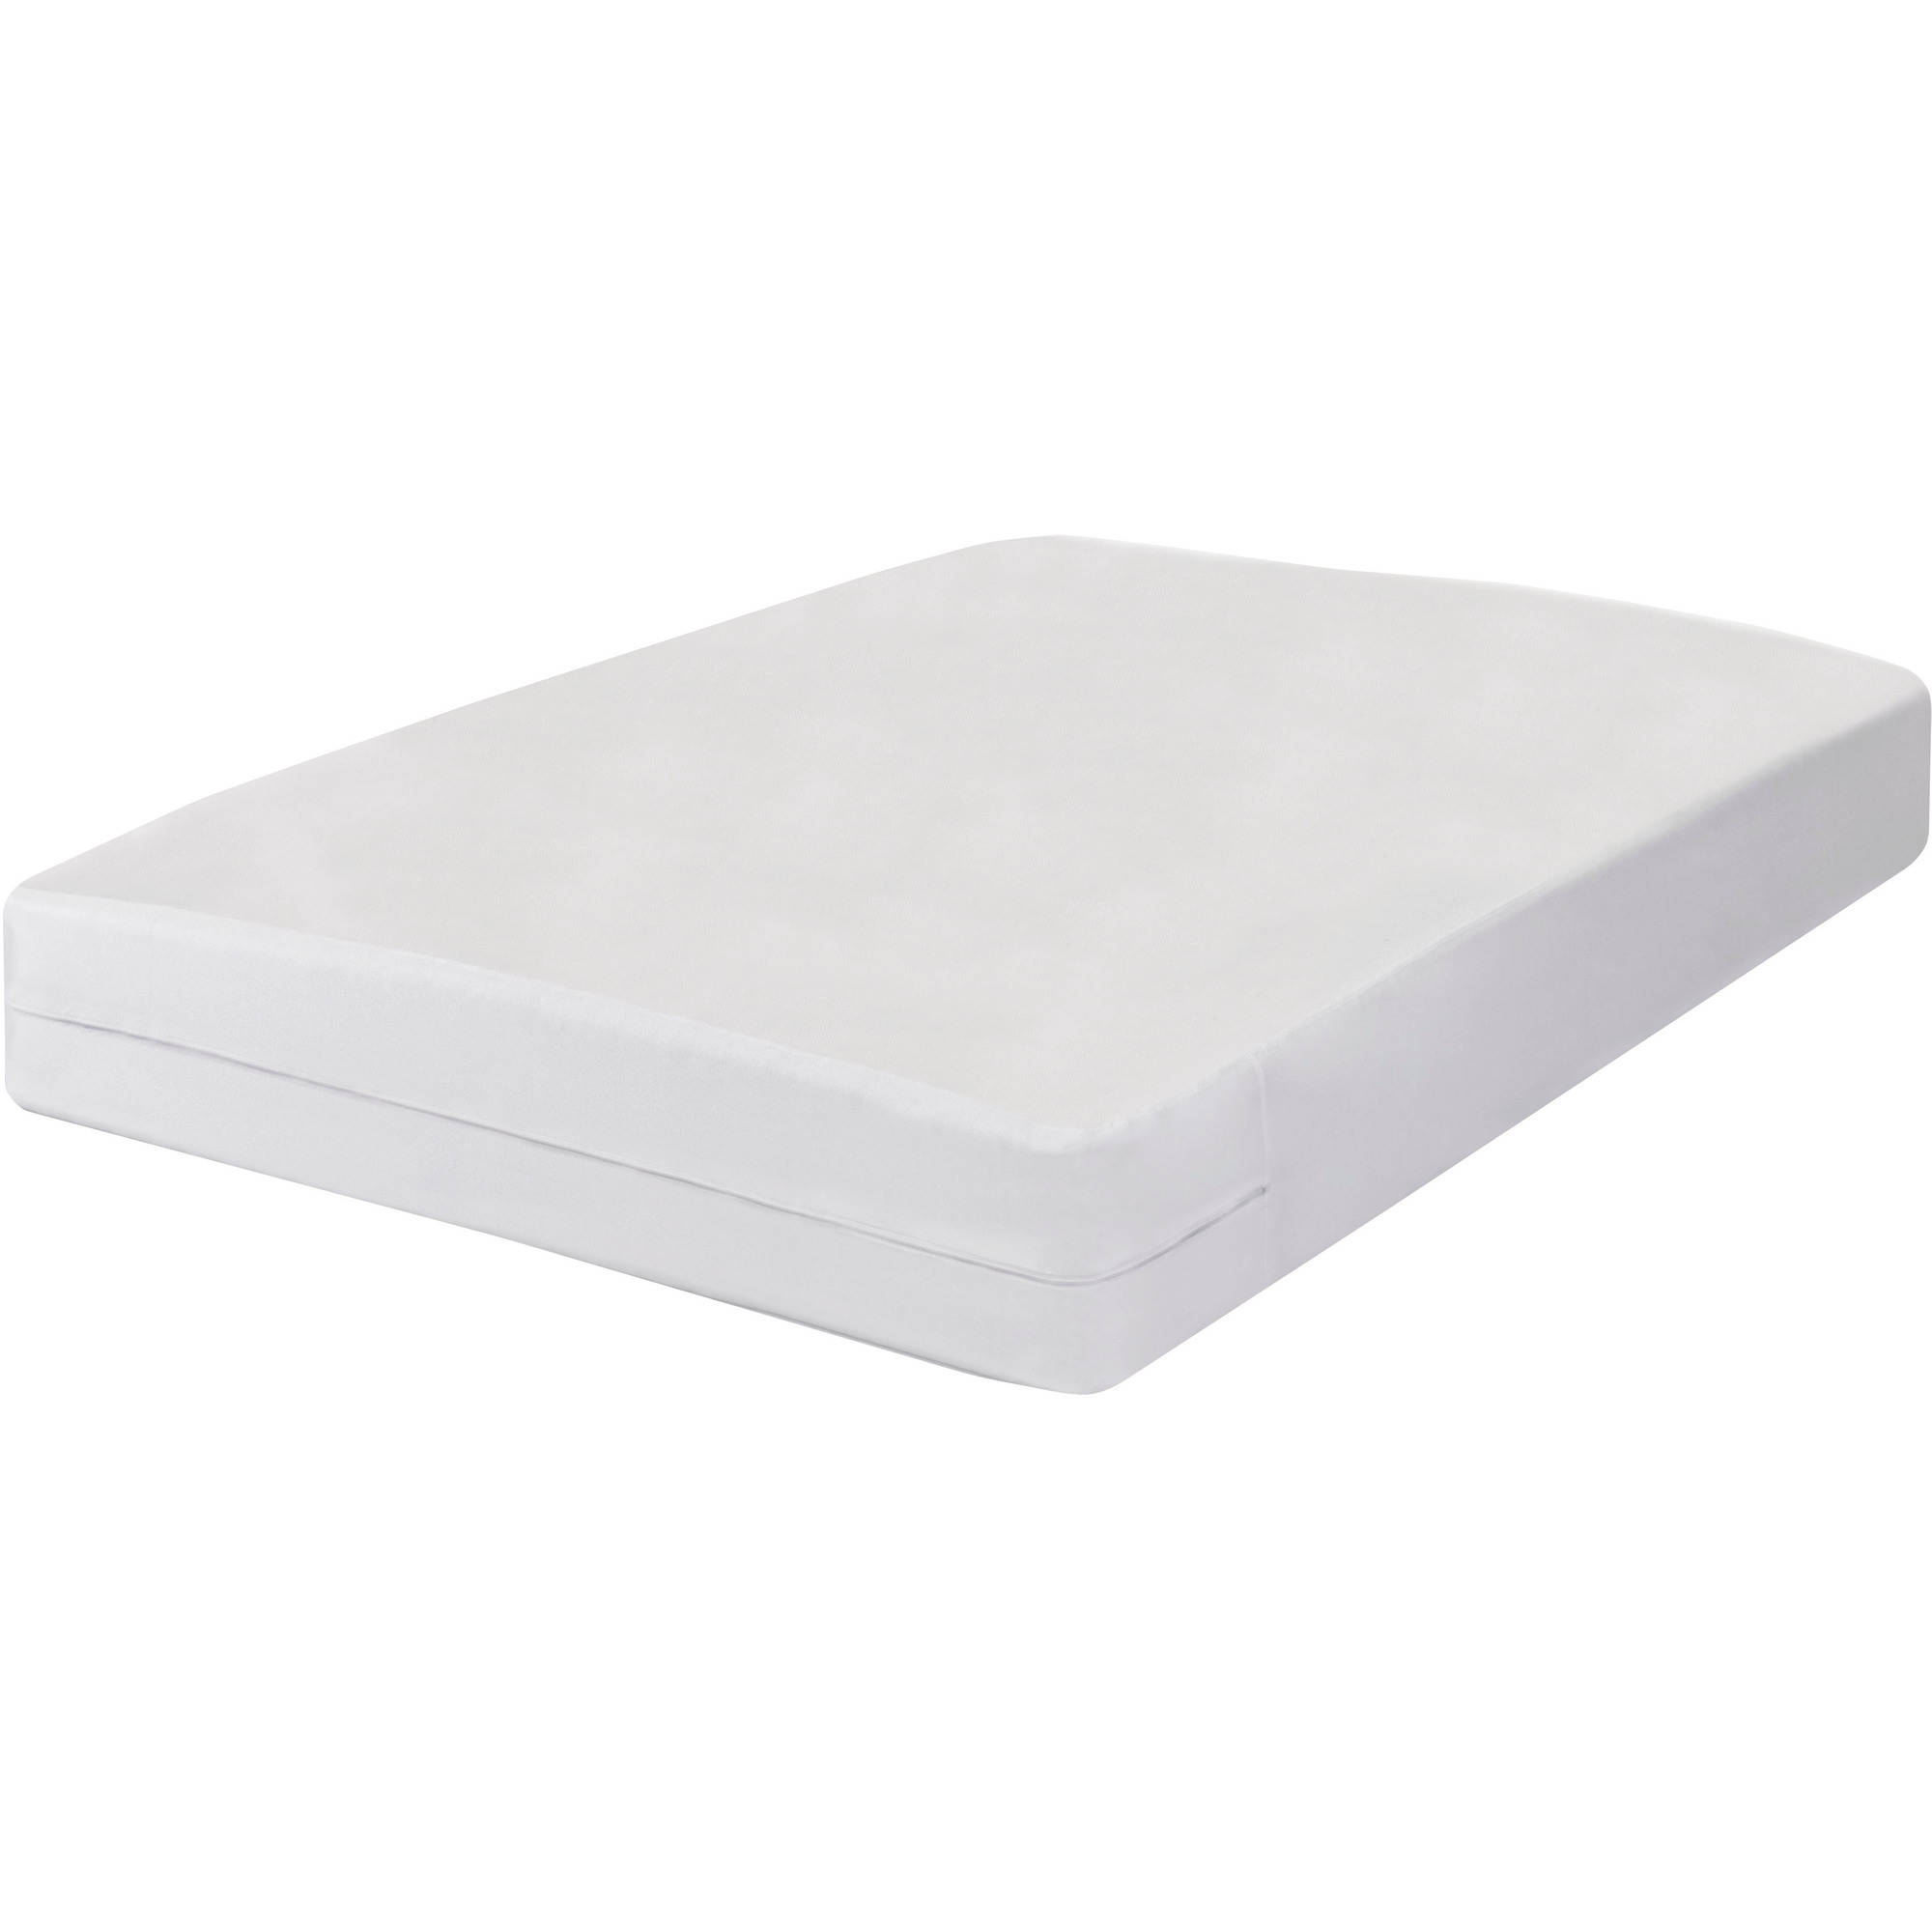 The Luxury Cotton Rich Original Bed Bug Blocker All In One Collection